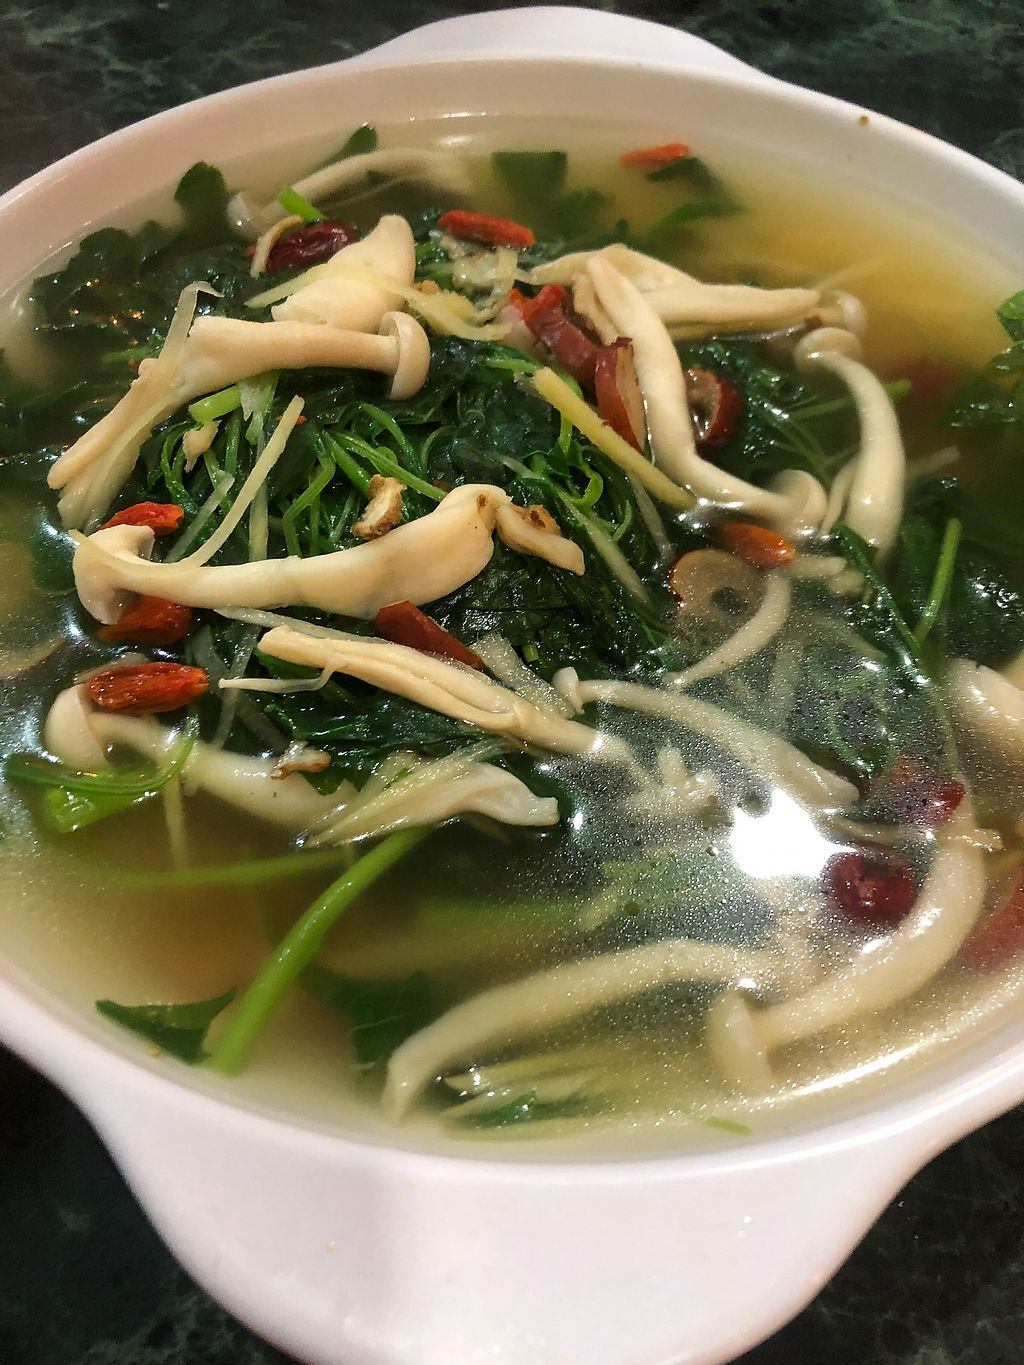 """Photo of Nature Vegetarian Delights  by <a href=""""/members/profile/AmyLeySzeThoo"""">AmyLeySzeThoo</a> <br/>Spinach in Stock <br/> March 24, 2018  - <a href='/contact/abuse/image/6162/375314'>Report</a>"""